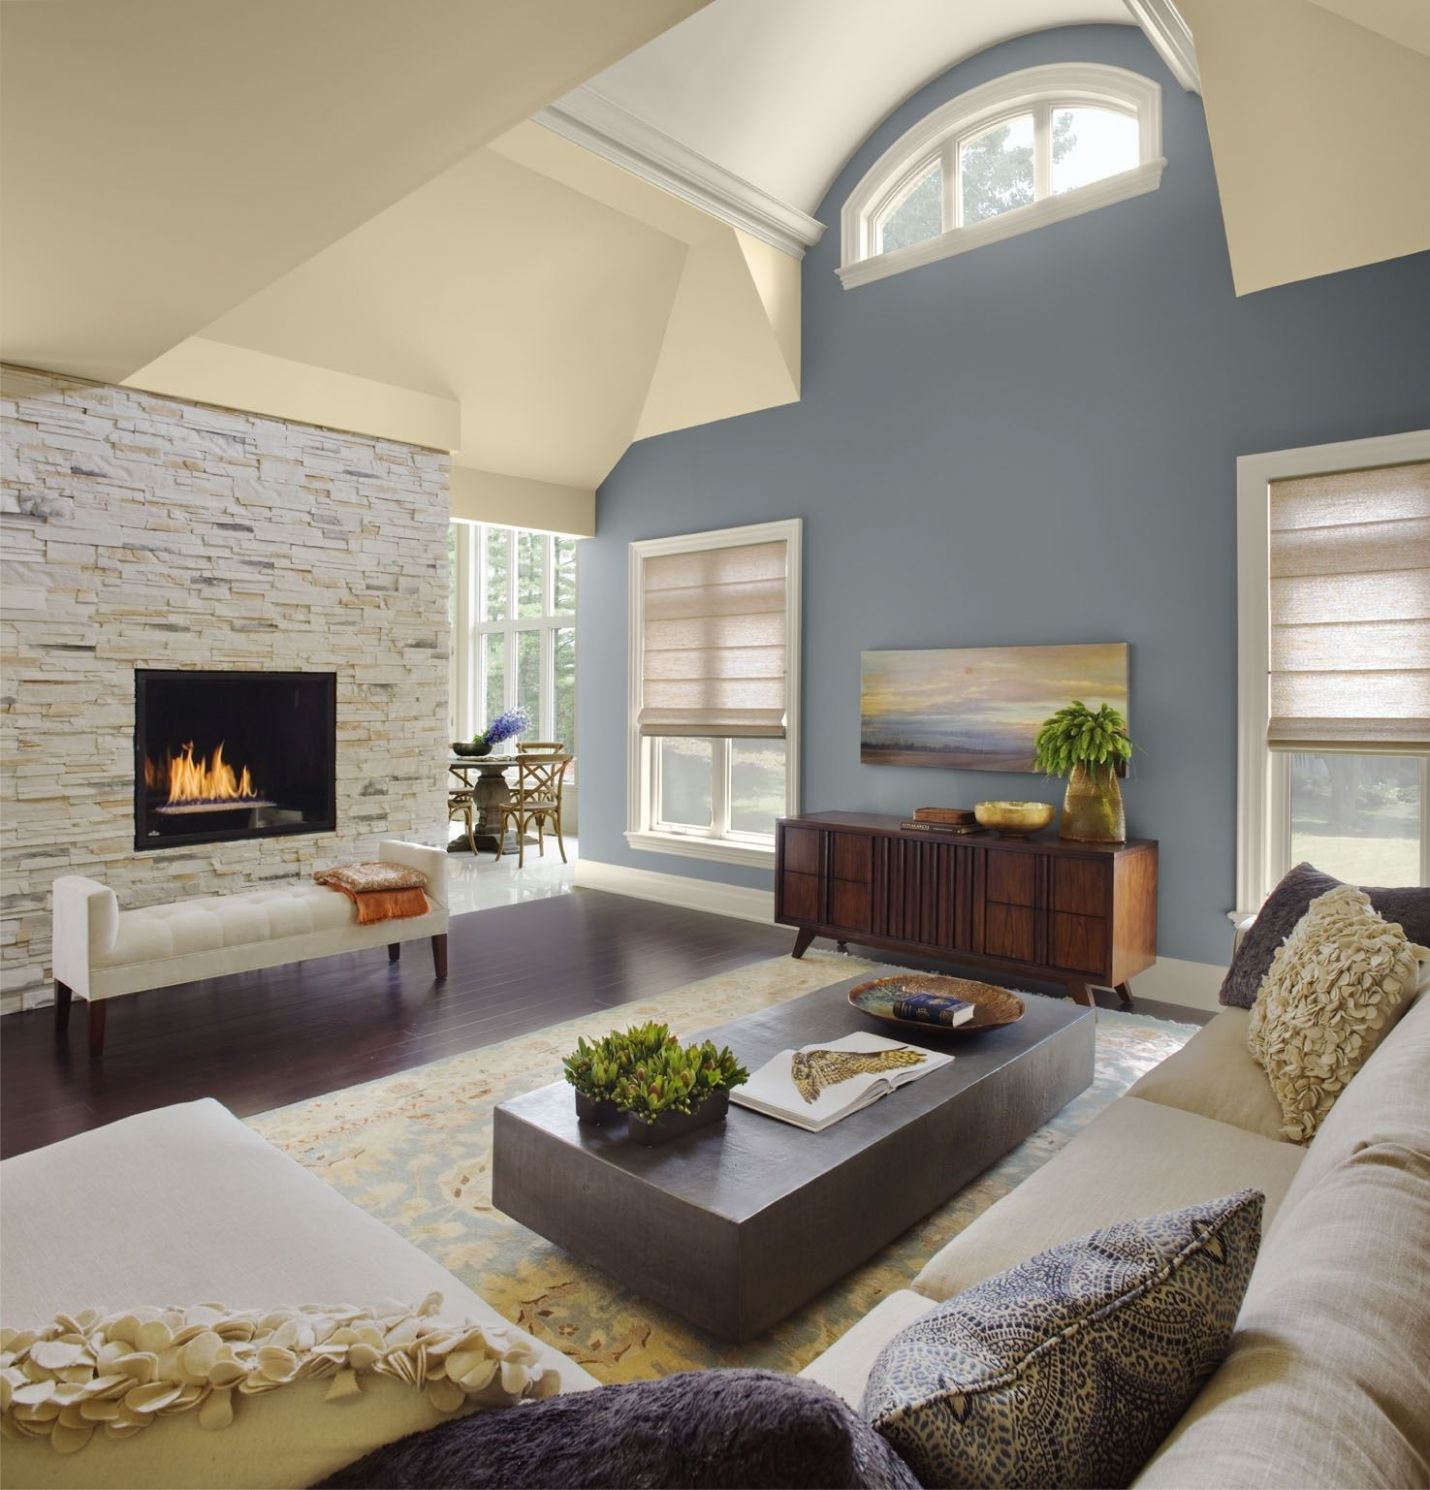 Color For Living Room With Cathedral Ceiling | Perfect living room ..